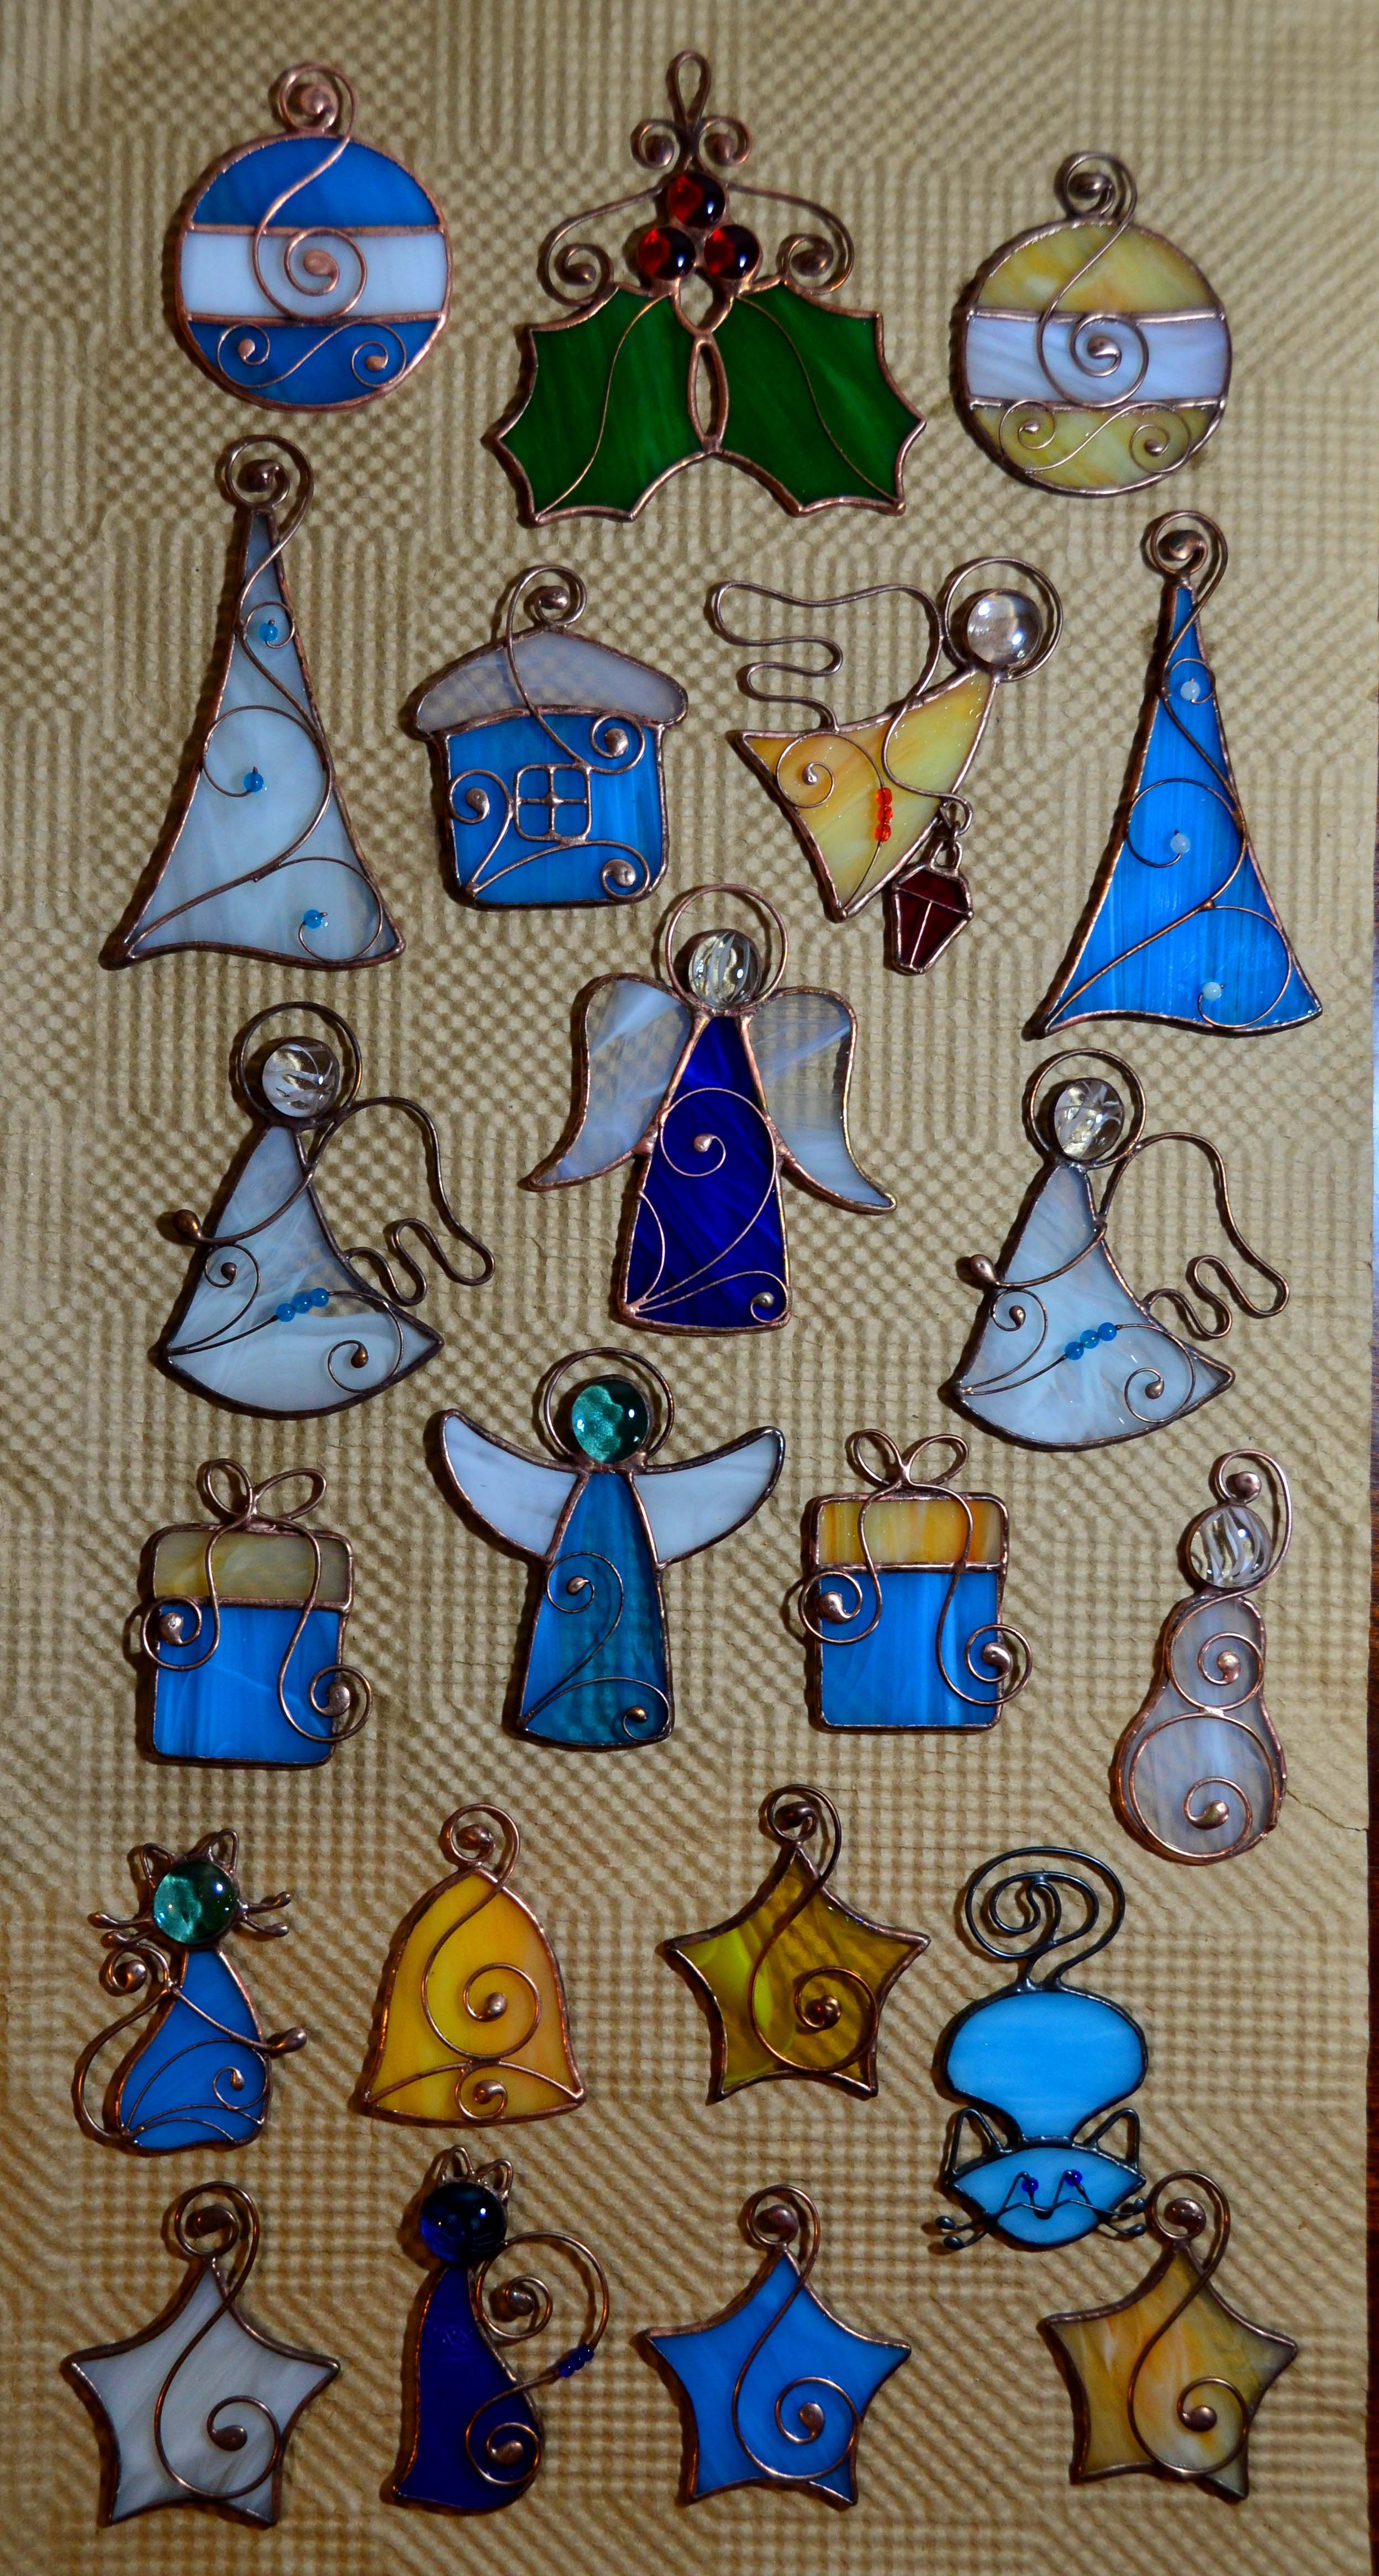 Stained glass Christmas ornaments | Stained glass ...